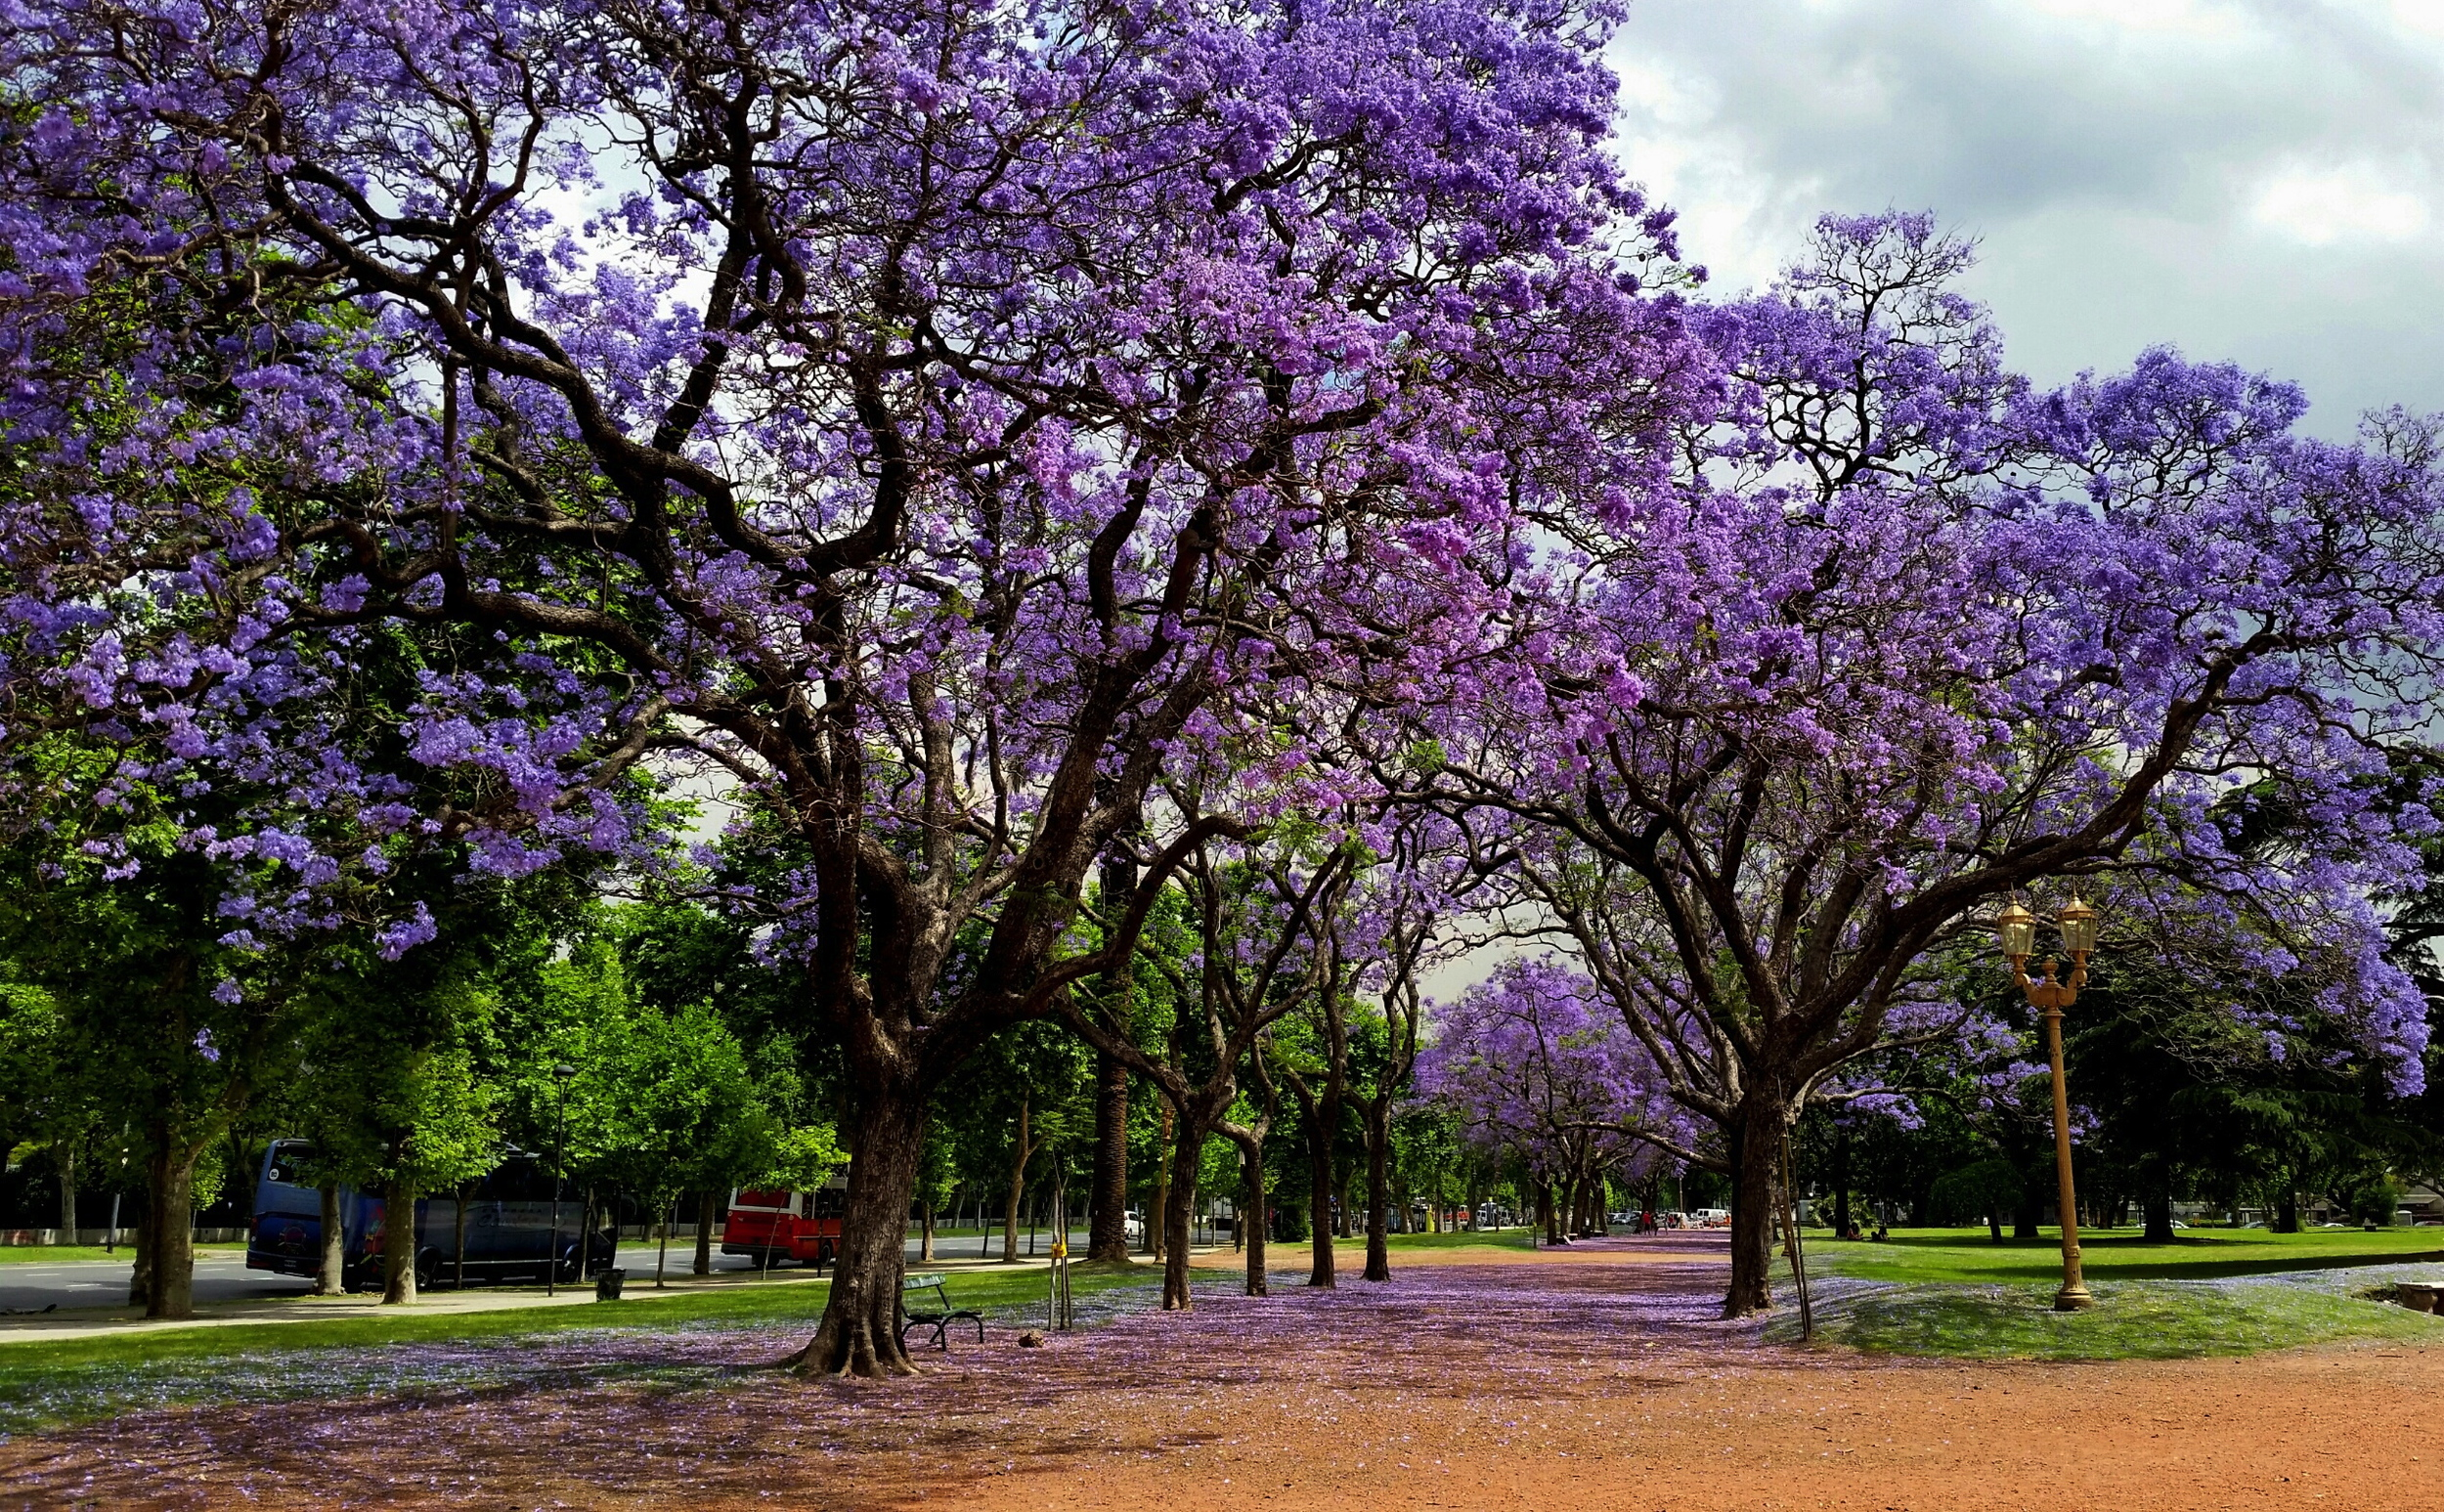 Jacaranda trees on the Plaza Intendente Seeber on the corner of Avenida Sarmiento and Avenida del Libertador in Palermo, Buenos Aires. As it turns out, the Plaza is in front of the US Embassy...I guess I was just magnetically drawn to the area.